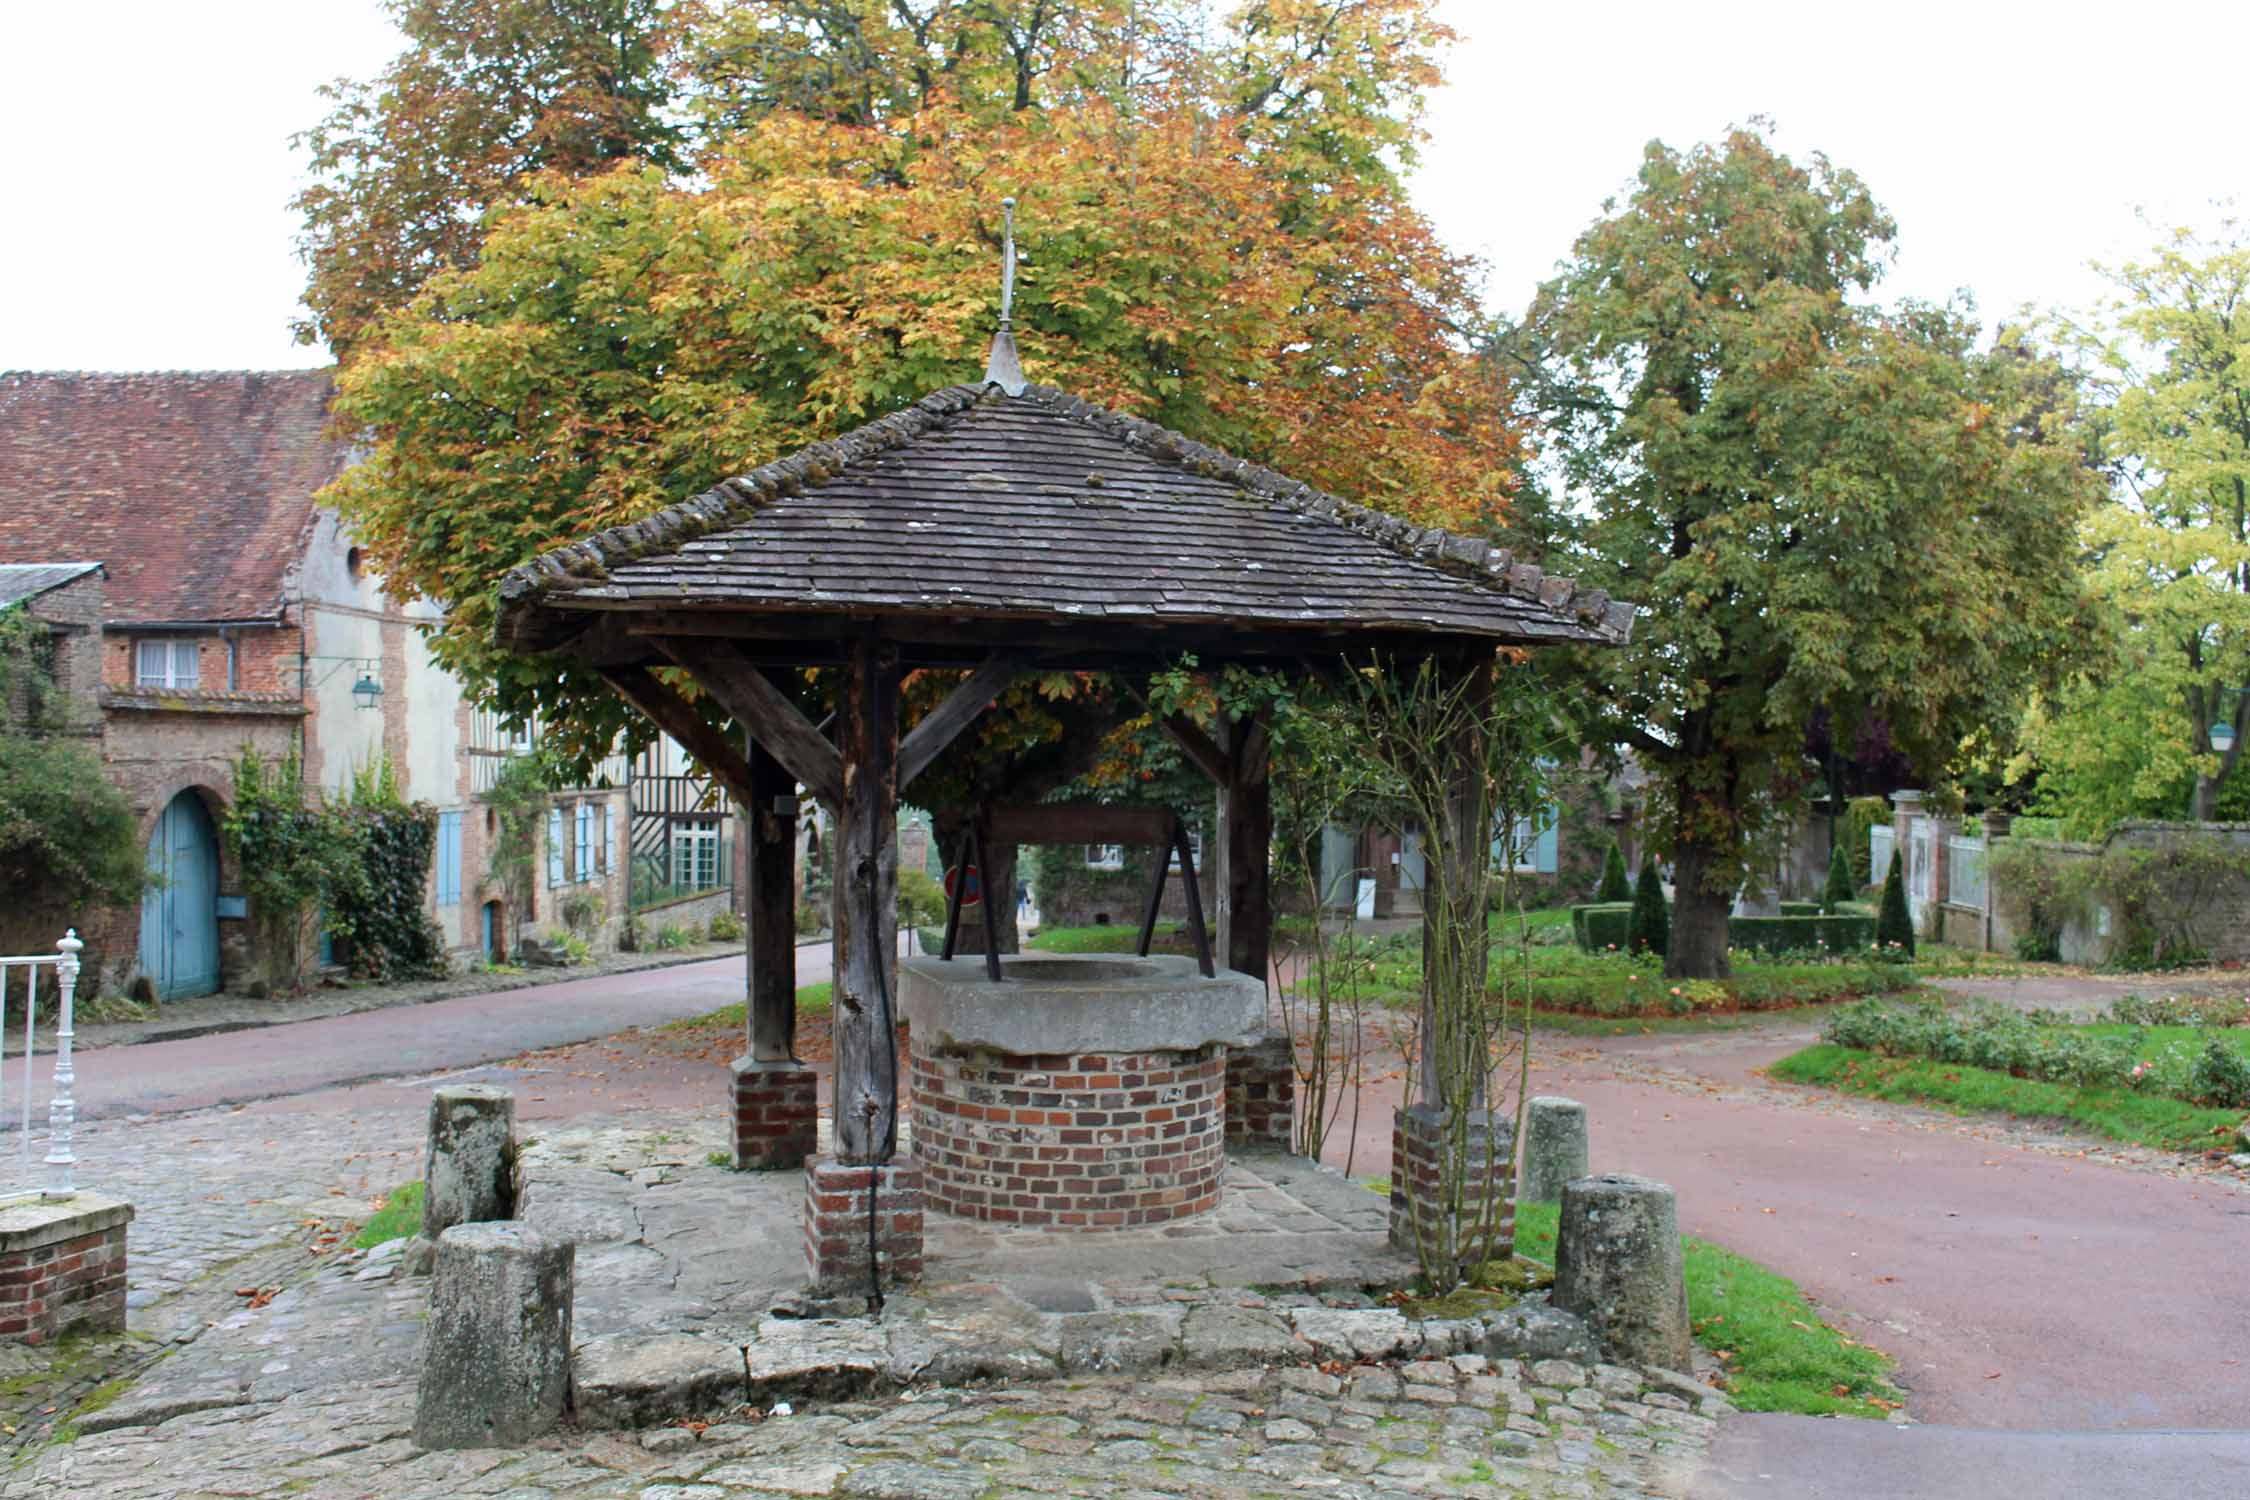 Gerberoy, old well